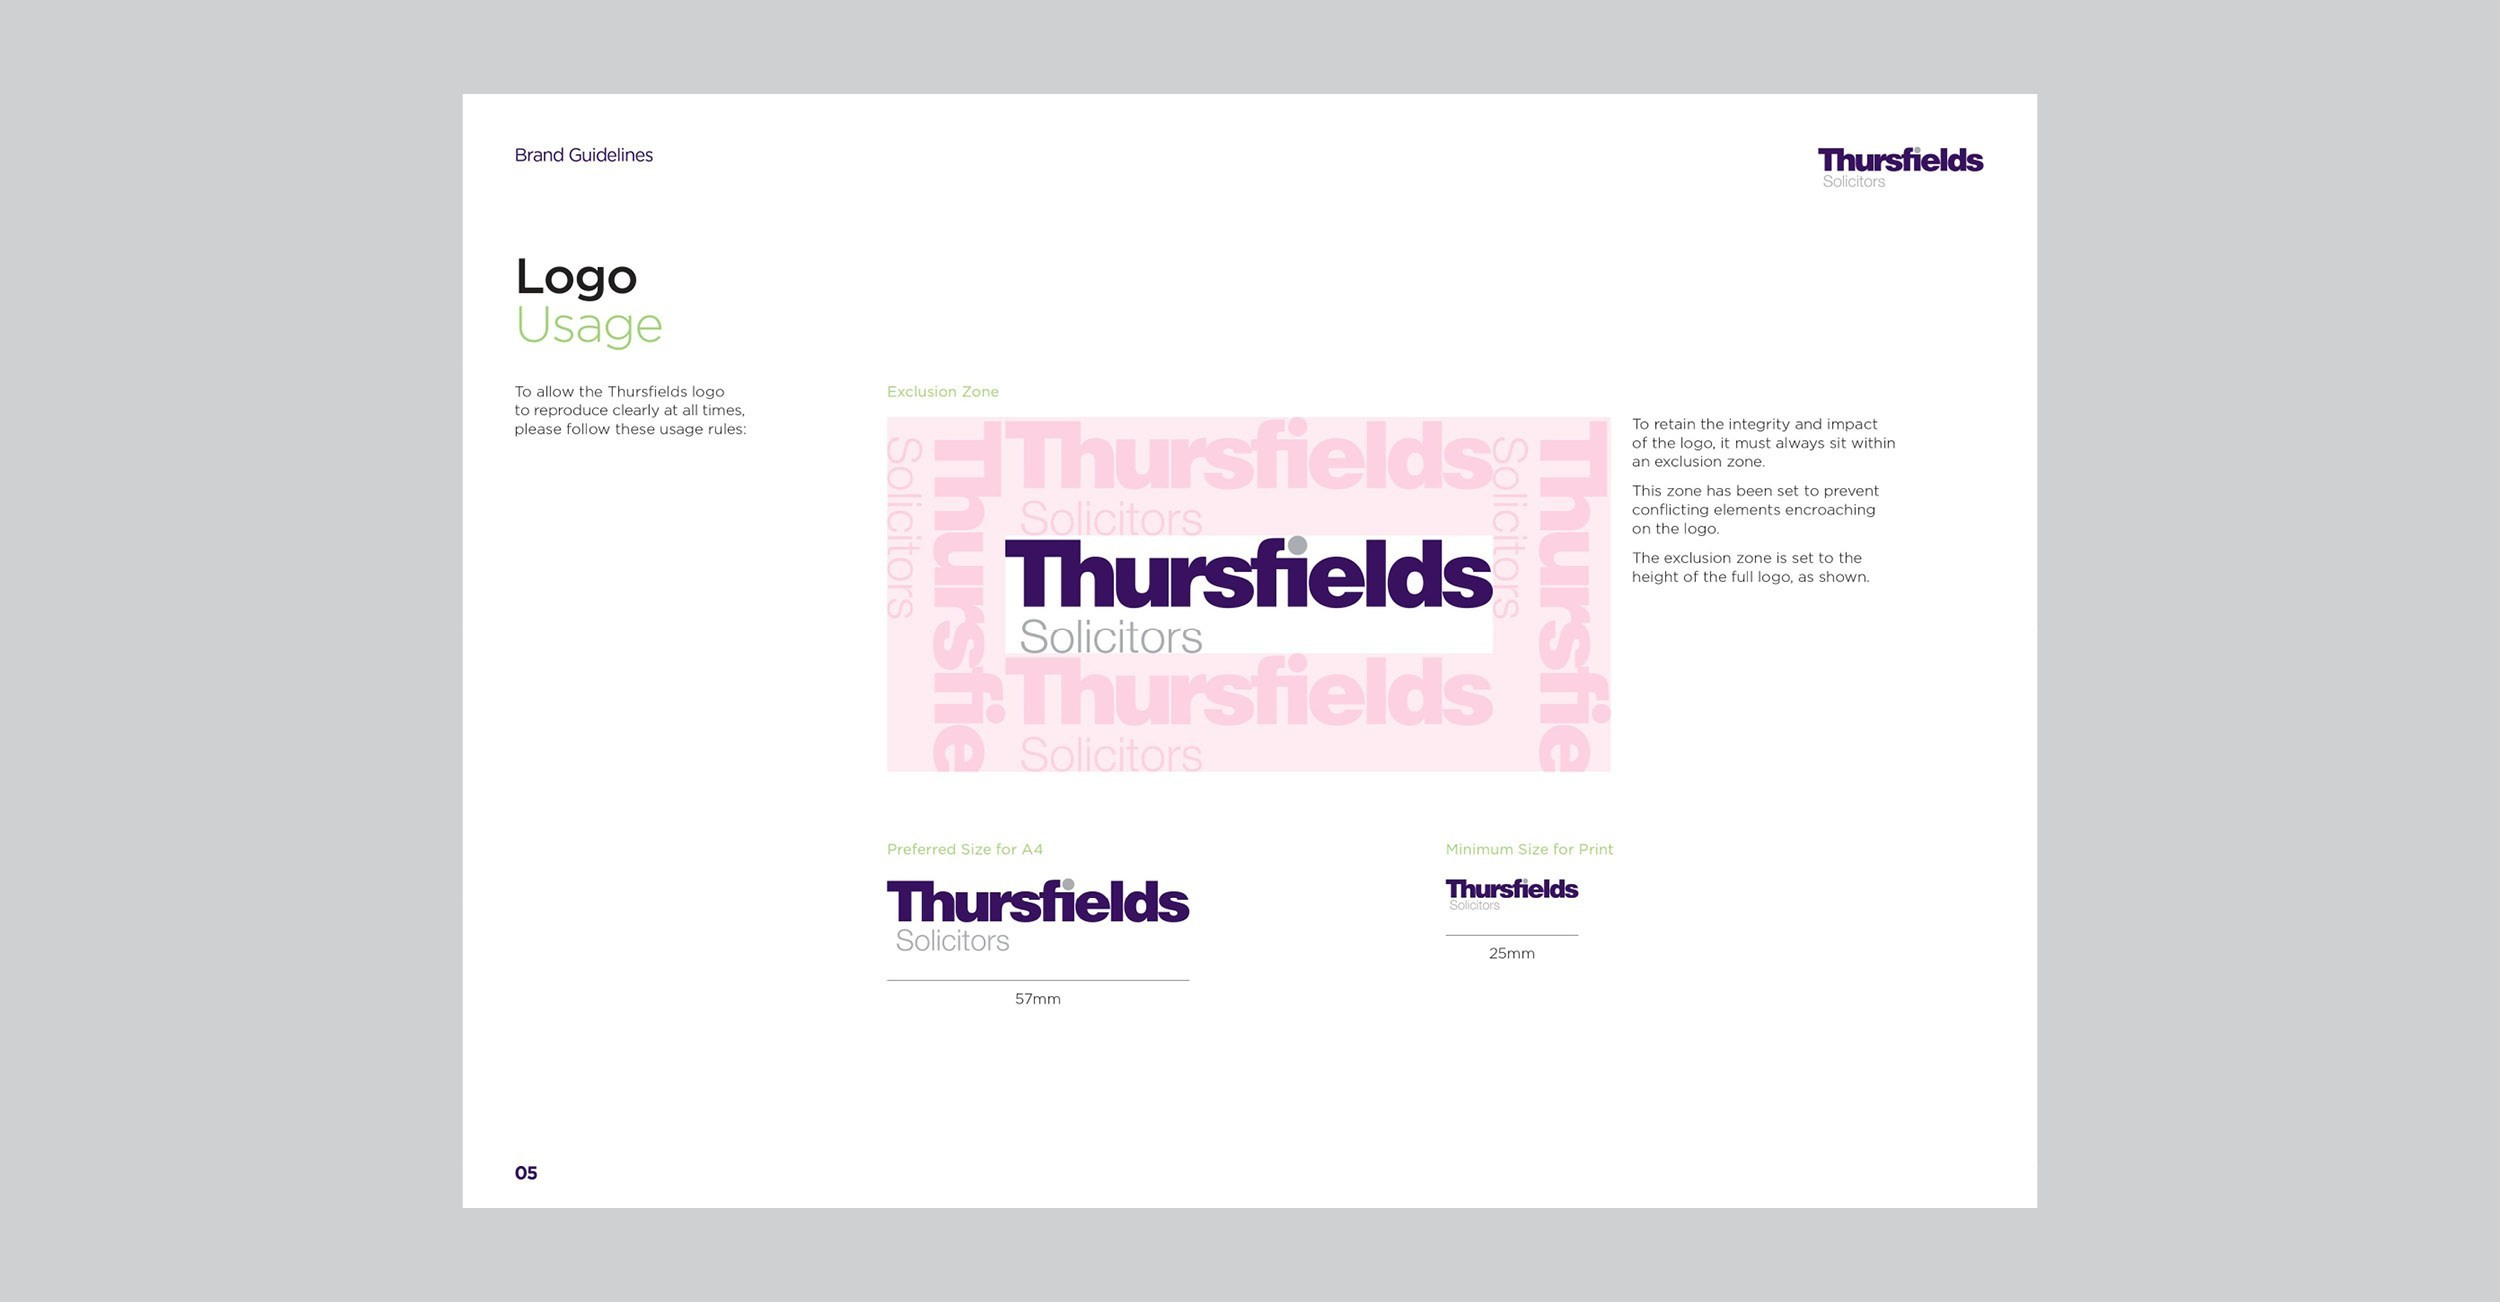 Thursfields Solicitors - Identity Update - Brand Guidelines - Example 2